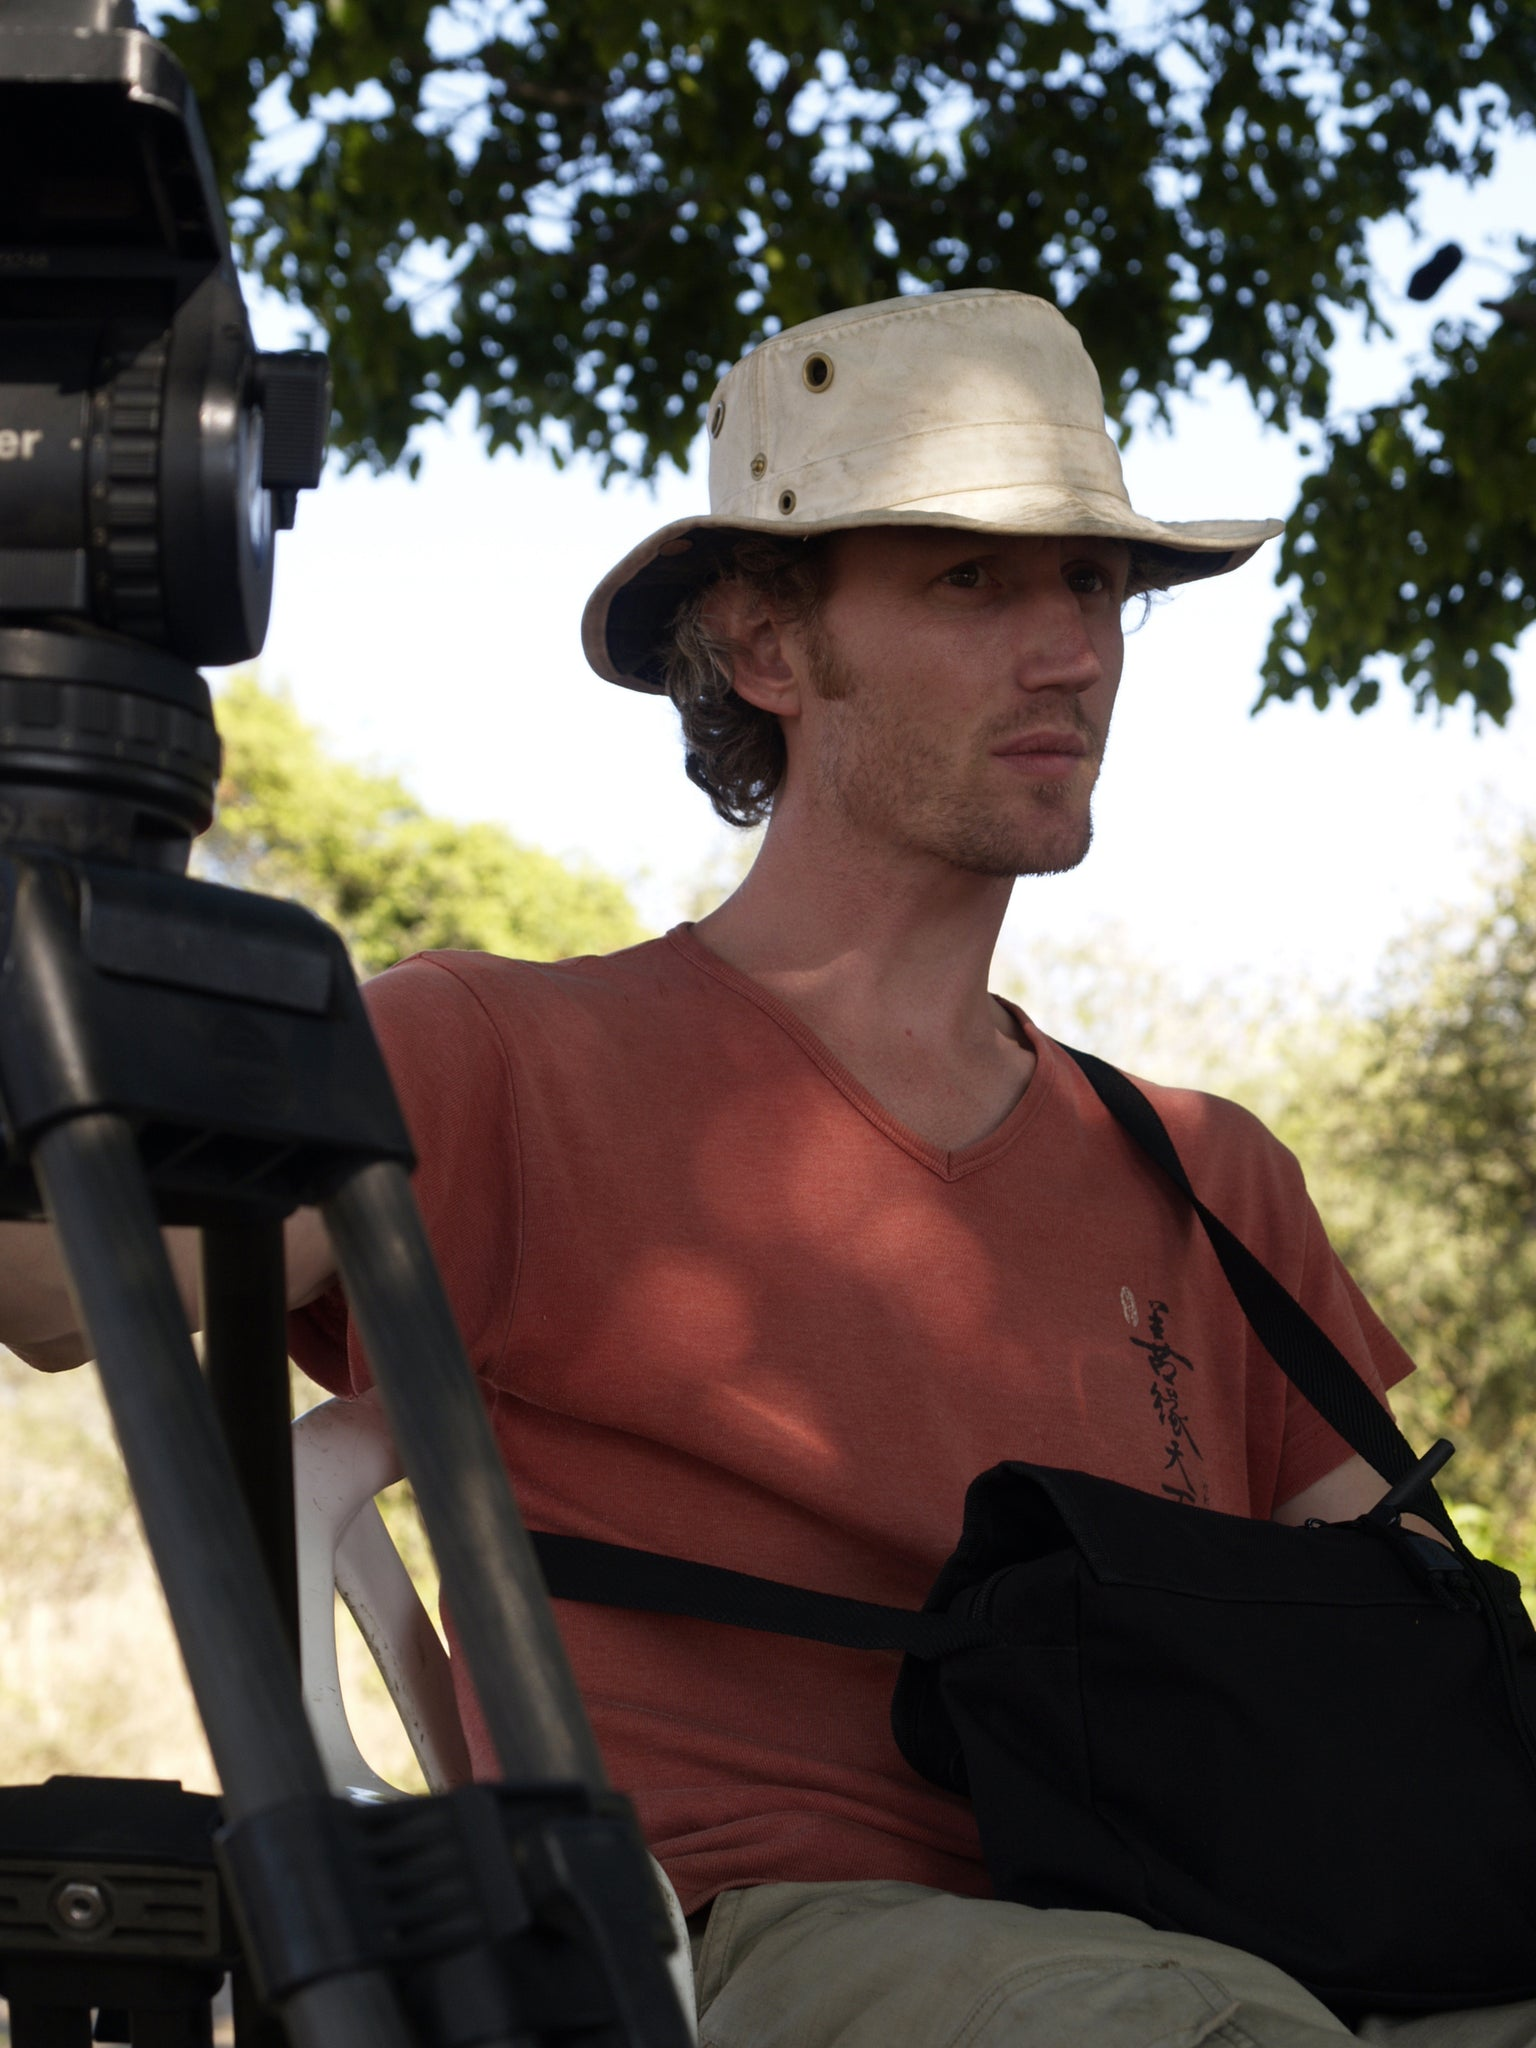 man wearing a hat with a camera